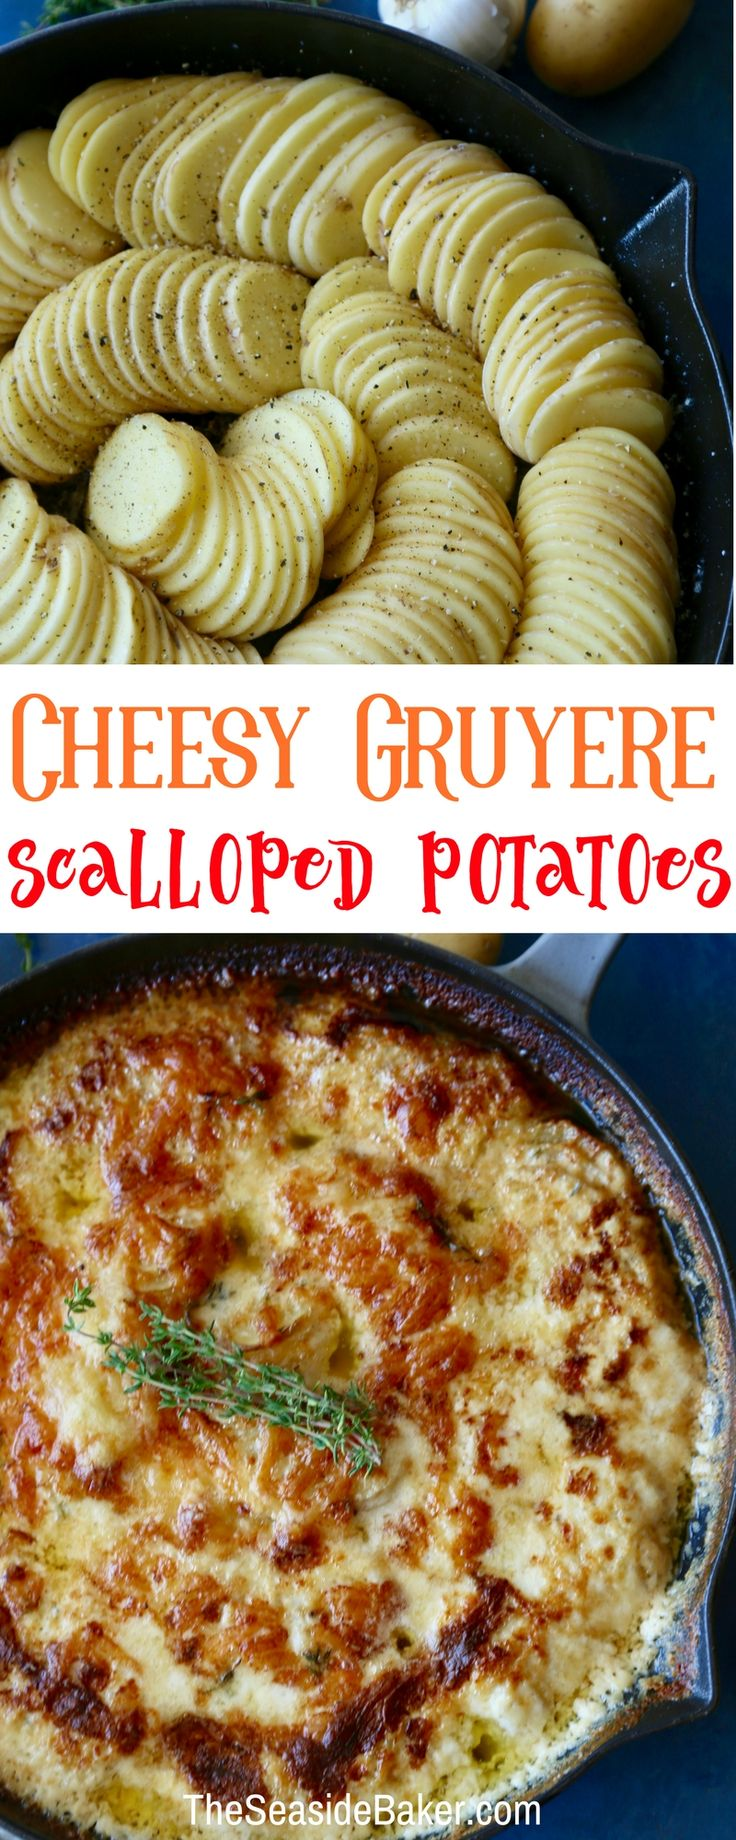 Cheesy Scalloped Potatoes made with Gruyere Cheese   Rich, buttery and delicious - the perfect side dish.   These are easy to make and would be perfect for  Thanksgiving or any holiday dinner.    #beholdpotatoes  #thanksgivingrecipes #christmasdinner #fallrecipes